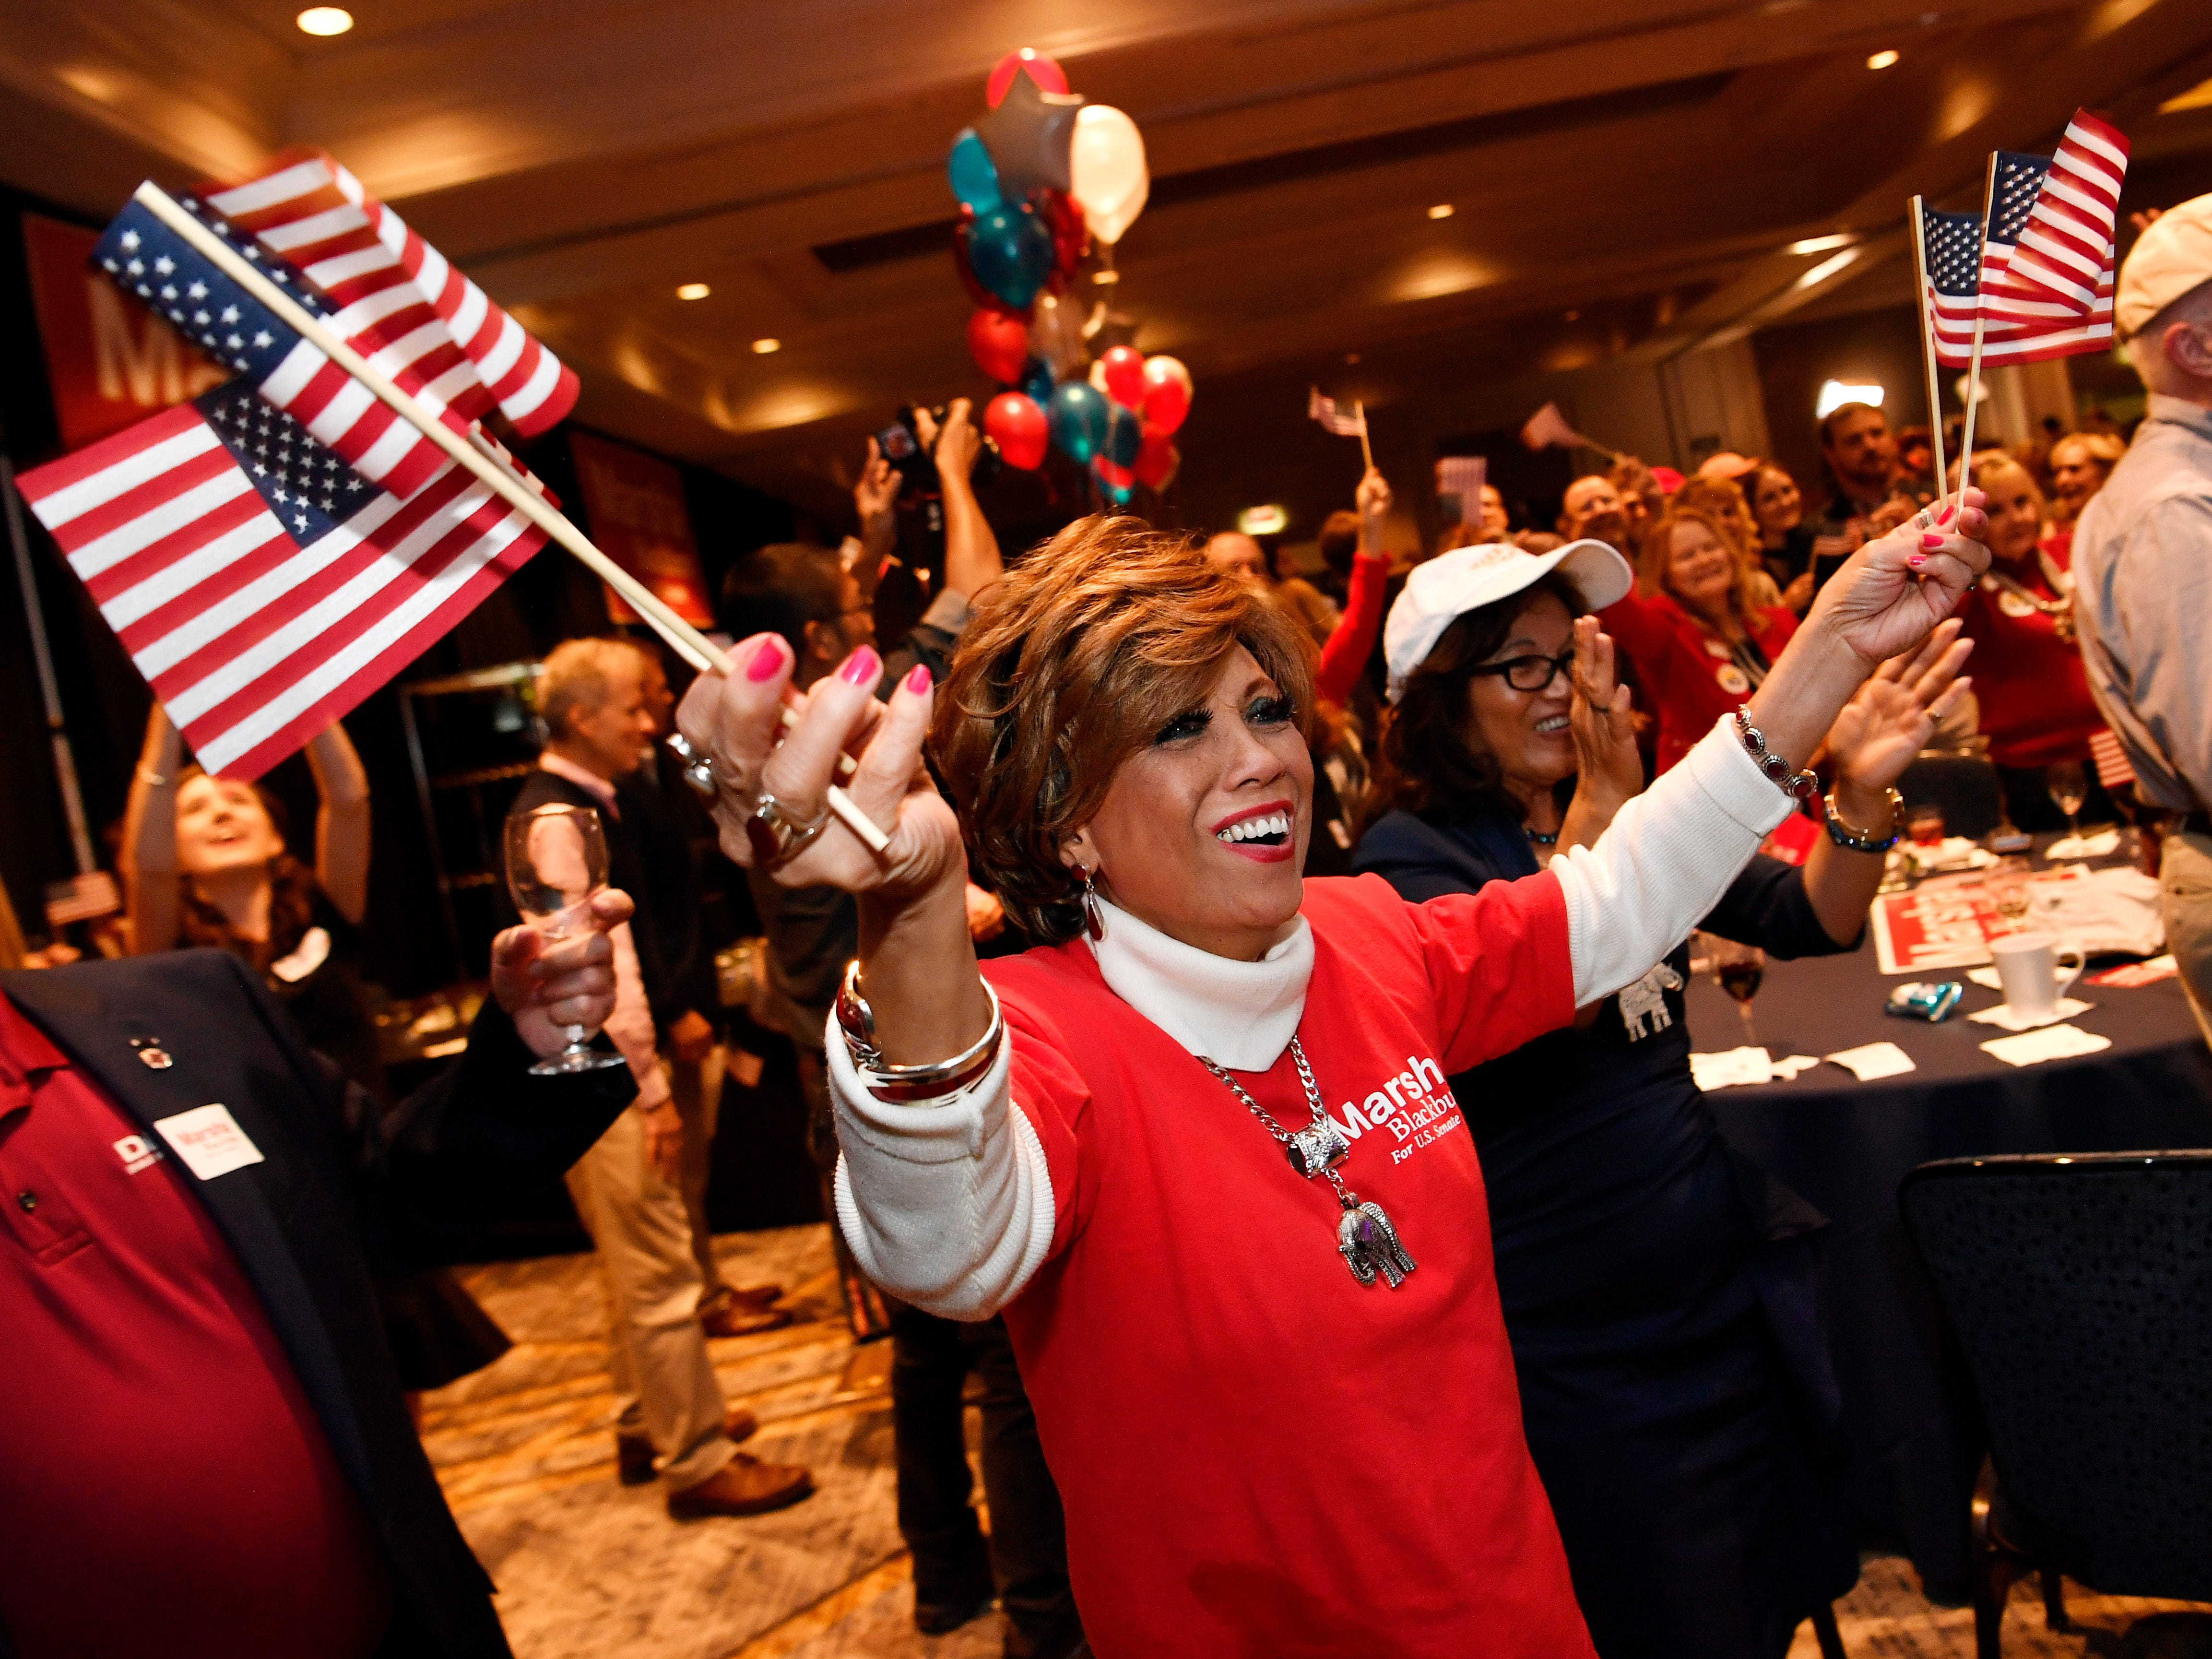 Alcia Lundquist celebrates during the election night watch party for Republican U.S. Senate candidate Marsha Blackburn  Tuesday, Nov. 6, 2018, in Franklin, Tenn.